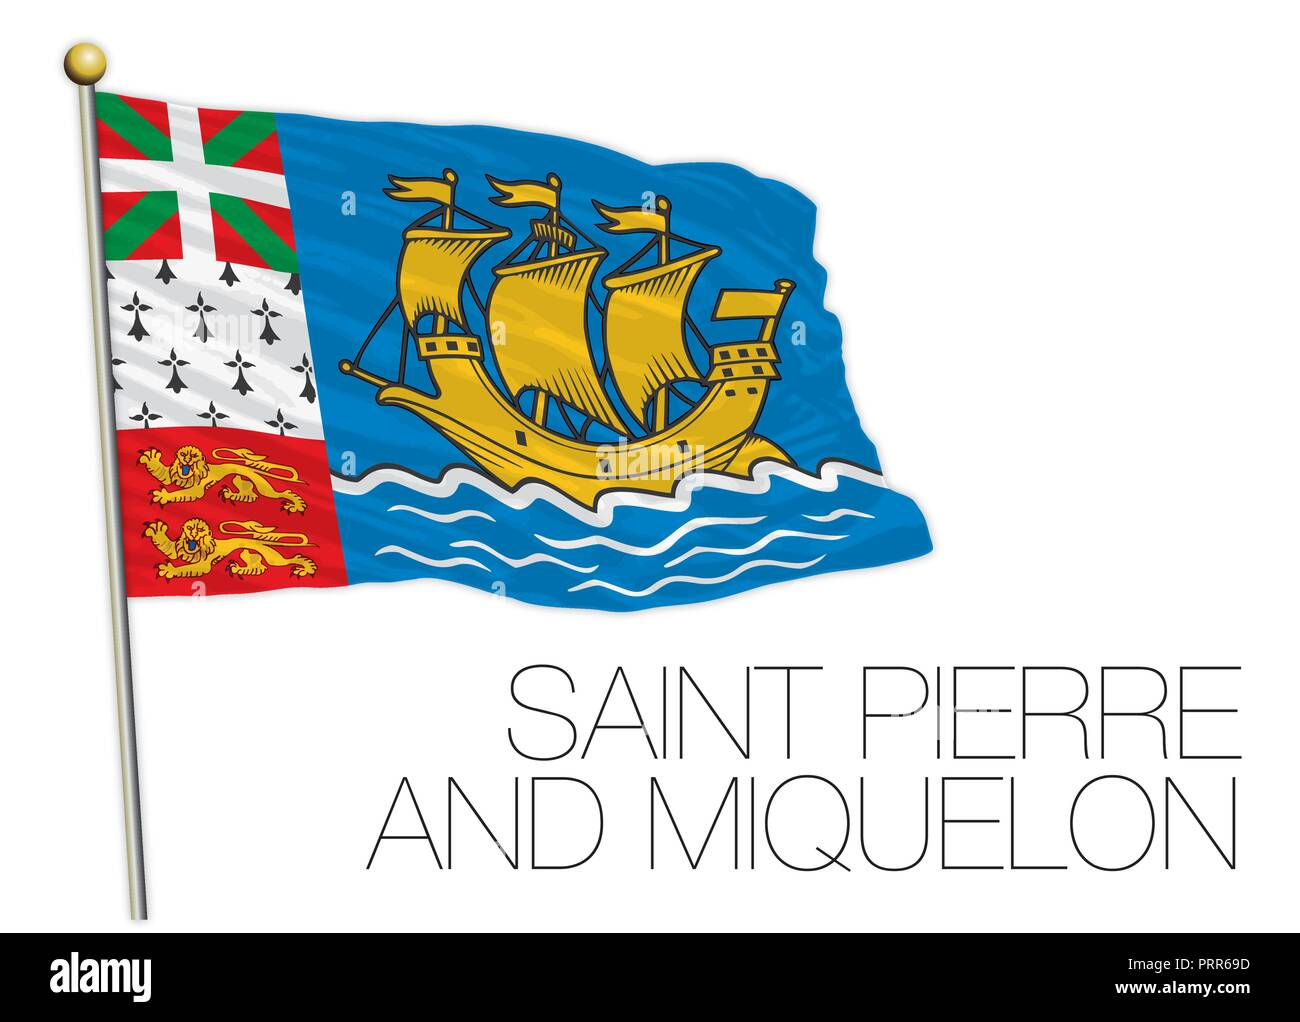 Saint Pierre and Miquelon official flag, vector illustration, France - Stock Image